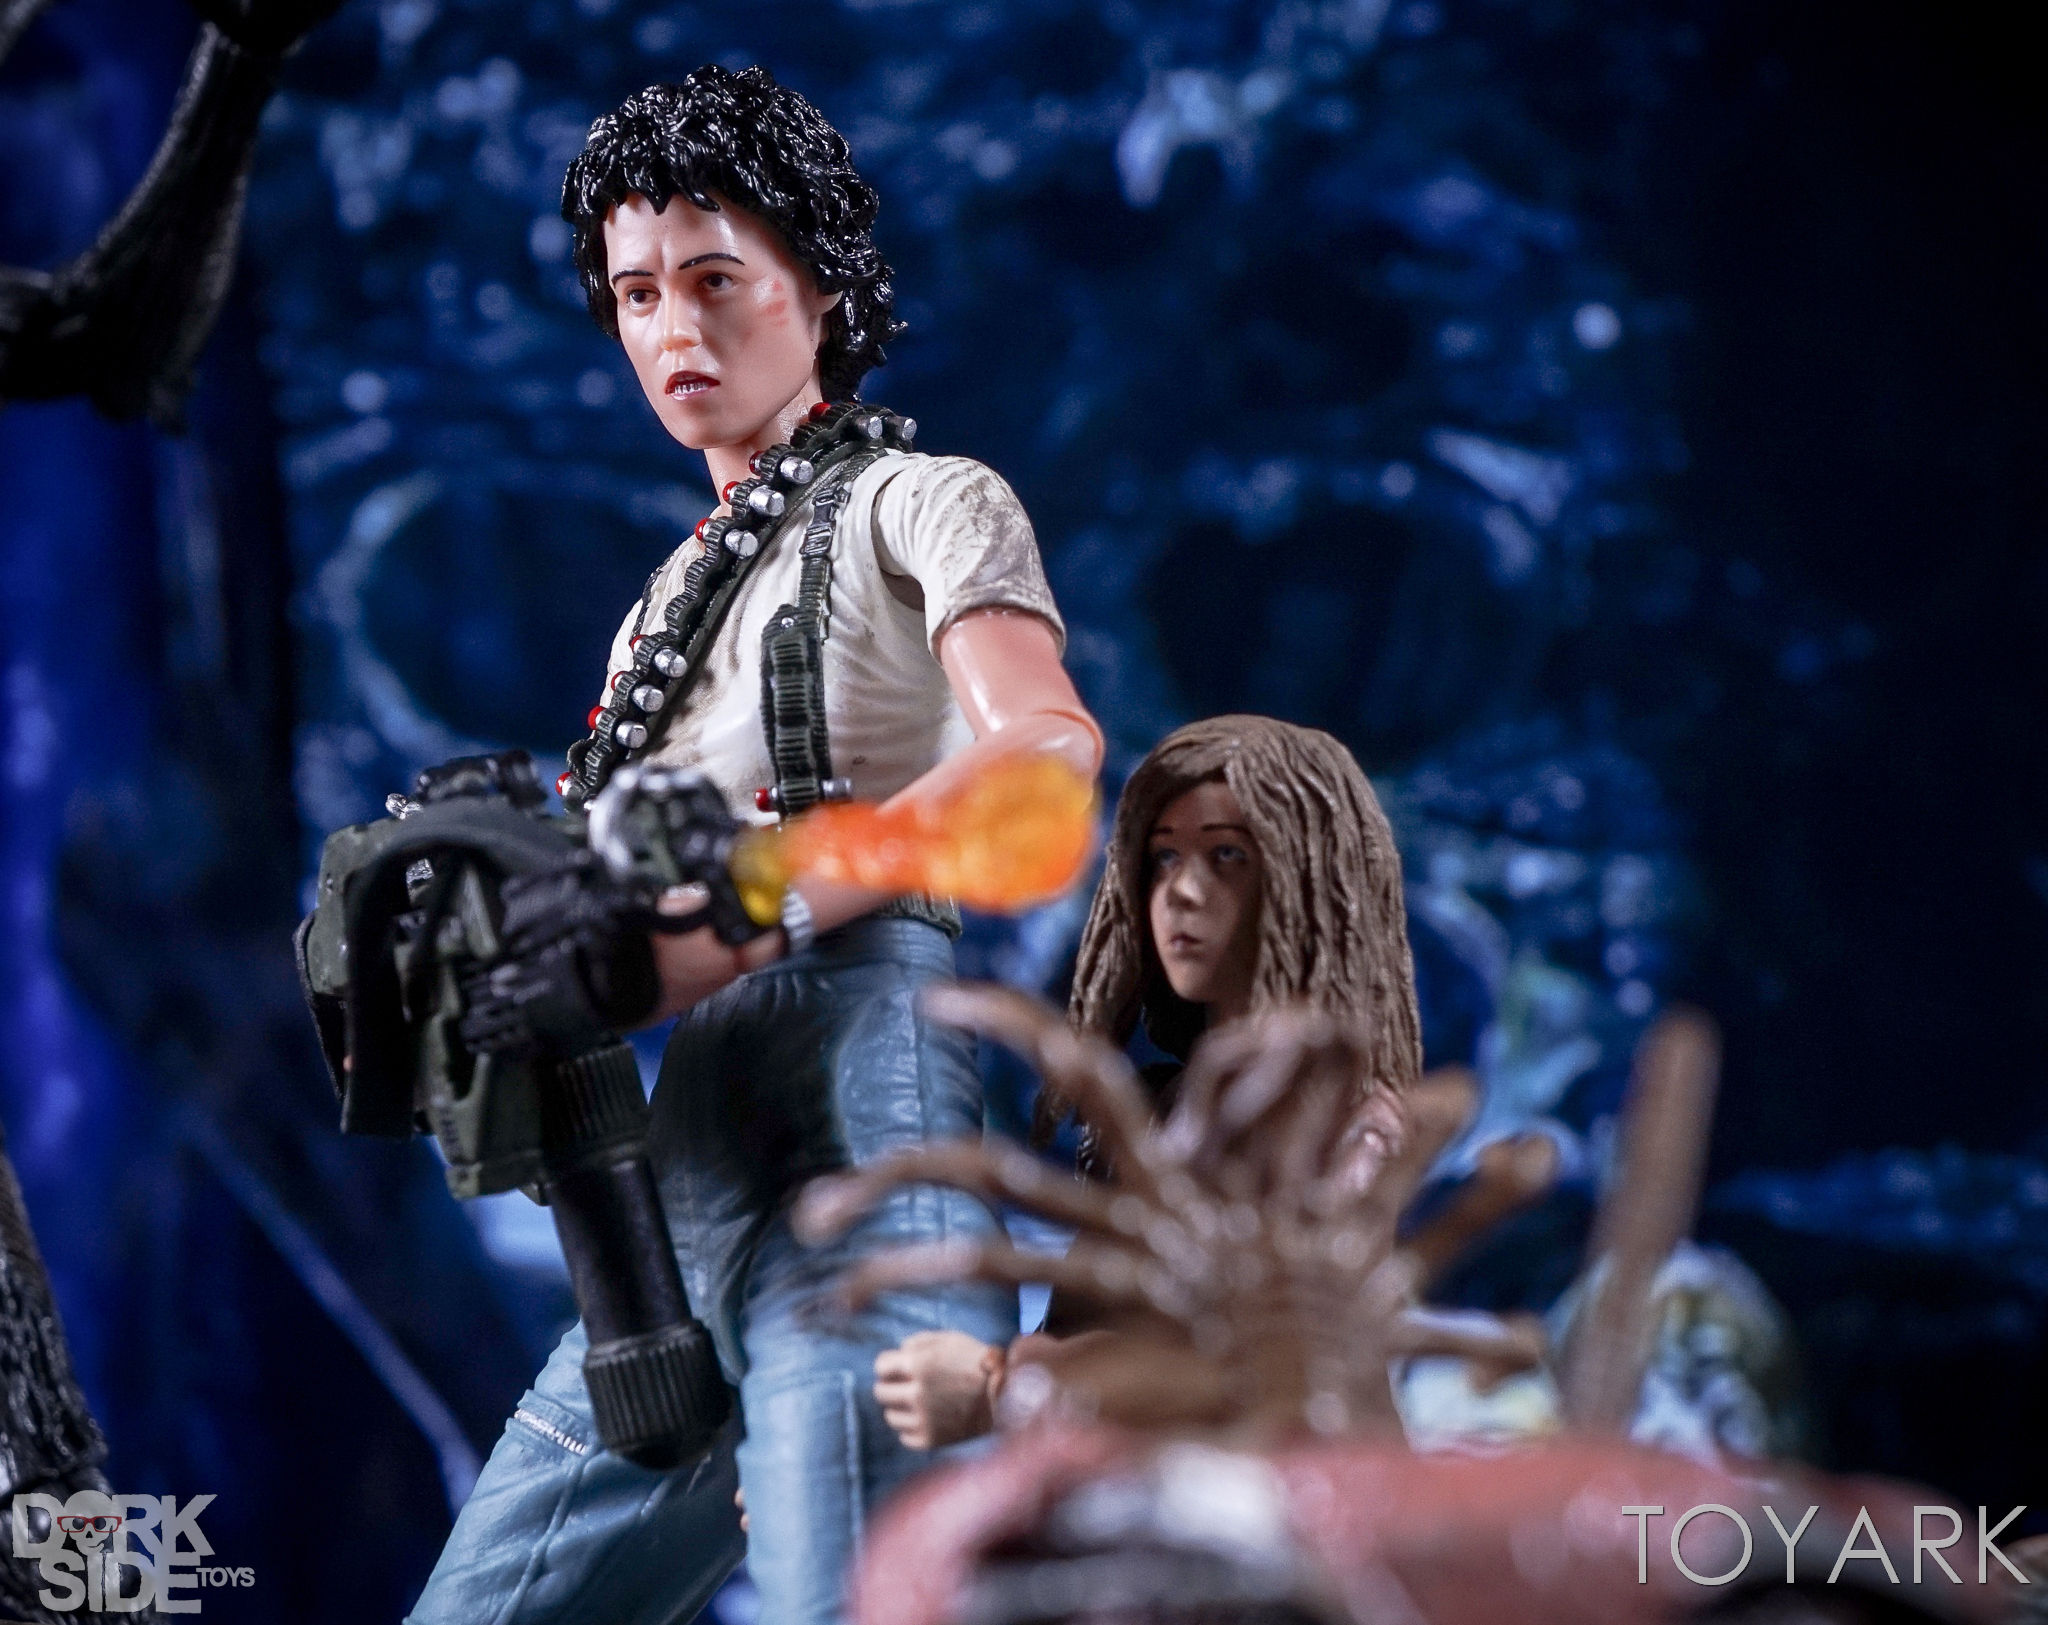 http://news.toyark.com/wp-content/uploads/sites/4/2016/12/Aliens-NECA-Ripley-and-Newt-Set-017.jpg